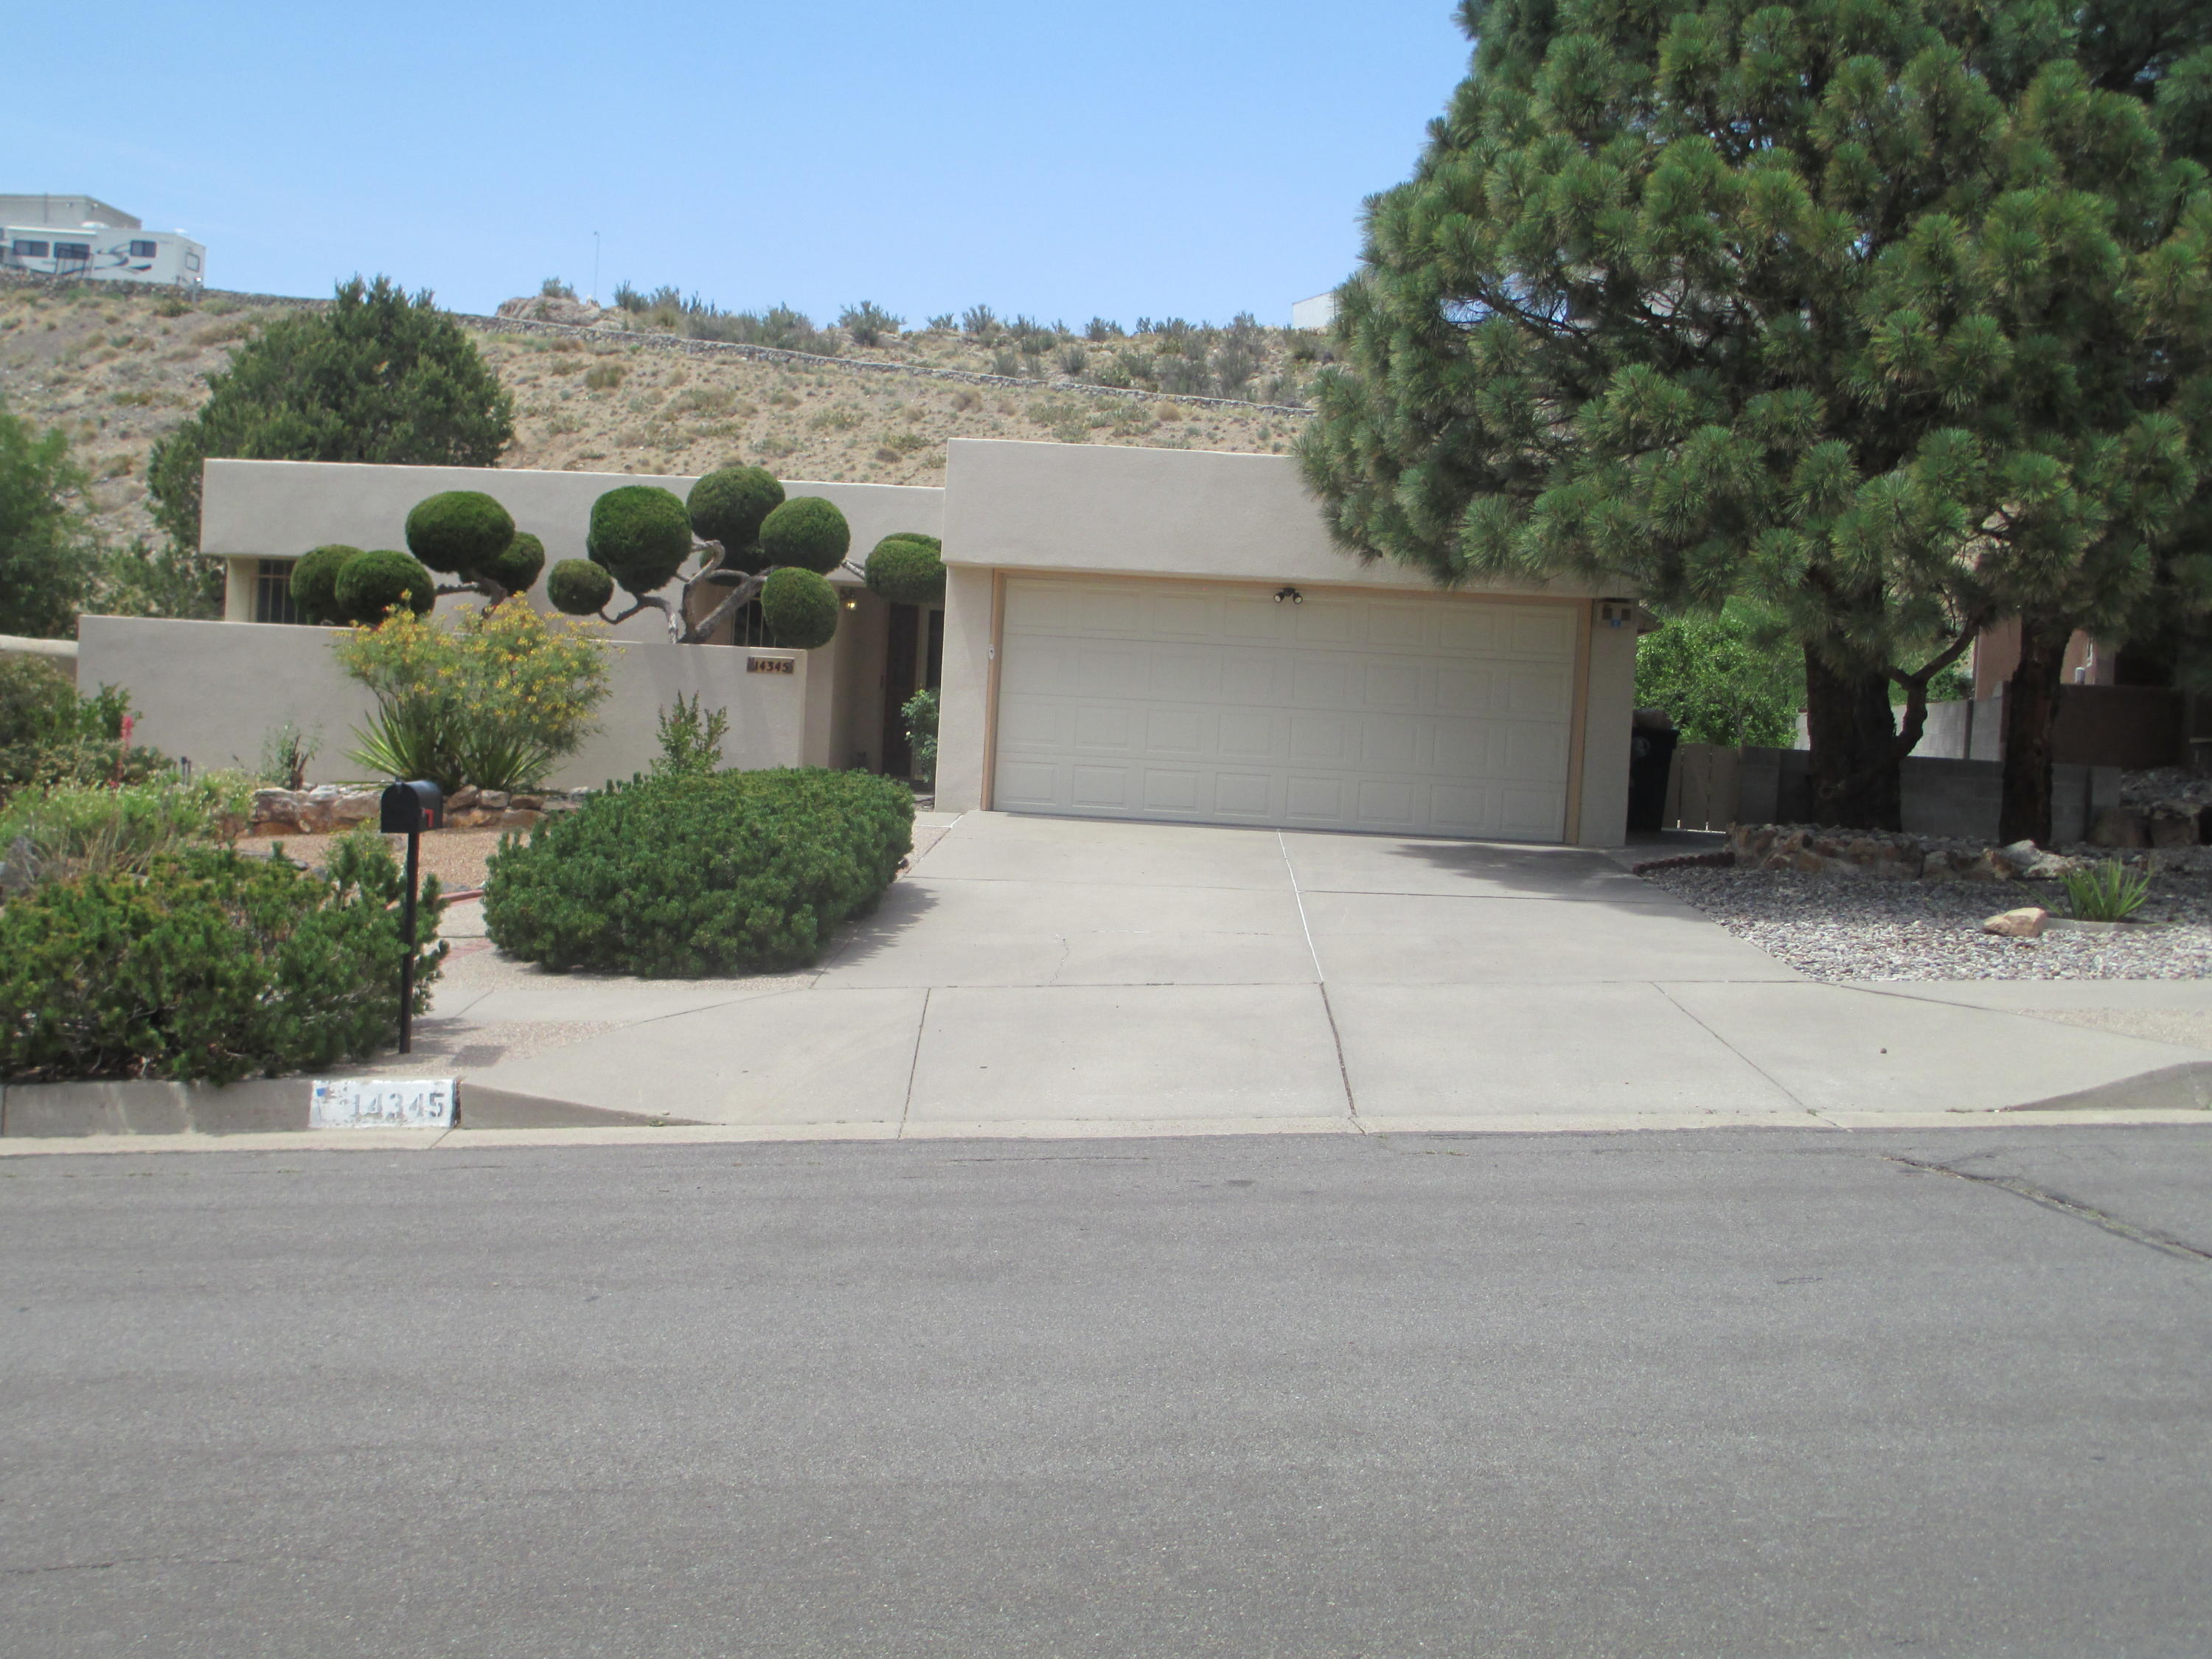 Custom Home at foot of Mountains.  3 Bedrooms 2 full bathrooms. Sunken Living room w/skylights, ceiling fan, dry bar, raised ceilings and Kiva Fireplace. Formal Dining room, Kitchen with Breakfast area, Bay window and tile floors. Covered front entry off walled Courtyard. Lg. Screened in back patio w/french doors from the living room and master BR. Skylight, 3 closets, double sinks, sunken garden tub and separate shower in Master Bath. Sunken Master Bedroom w/ kiva fireplace too. Recessed lighting, Security Wrought w/safety releases. Additional 290 sq ft. heated workshop/garage in back. Beautifully landscaped F & B yards w/timed sprinklers. Lg. 2 car garage. Rolled roofing, thermal double pane windows. Block wall in back. Not many homes come available in this neighborhood. Come see it soon